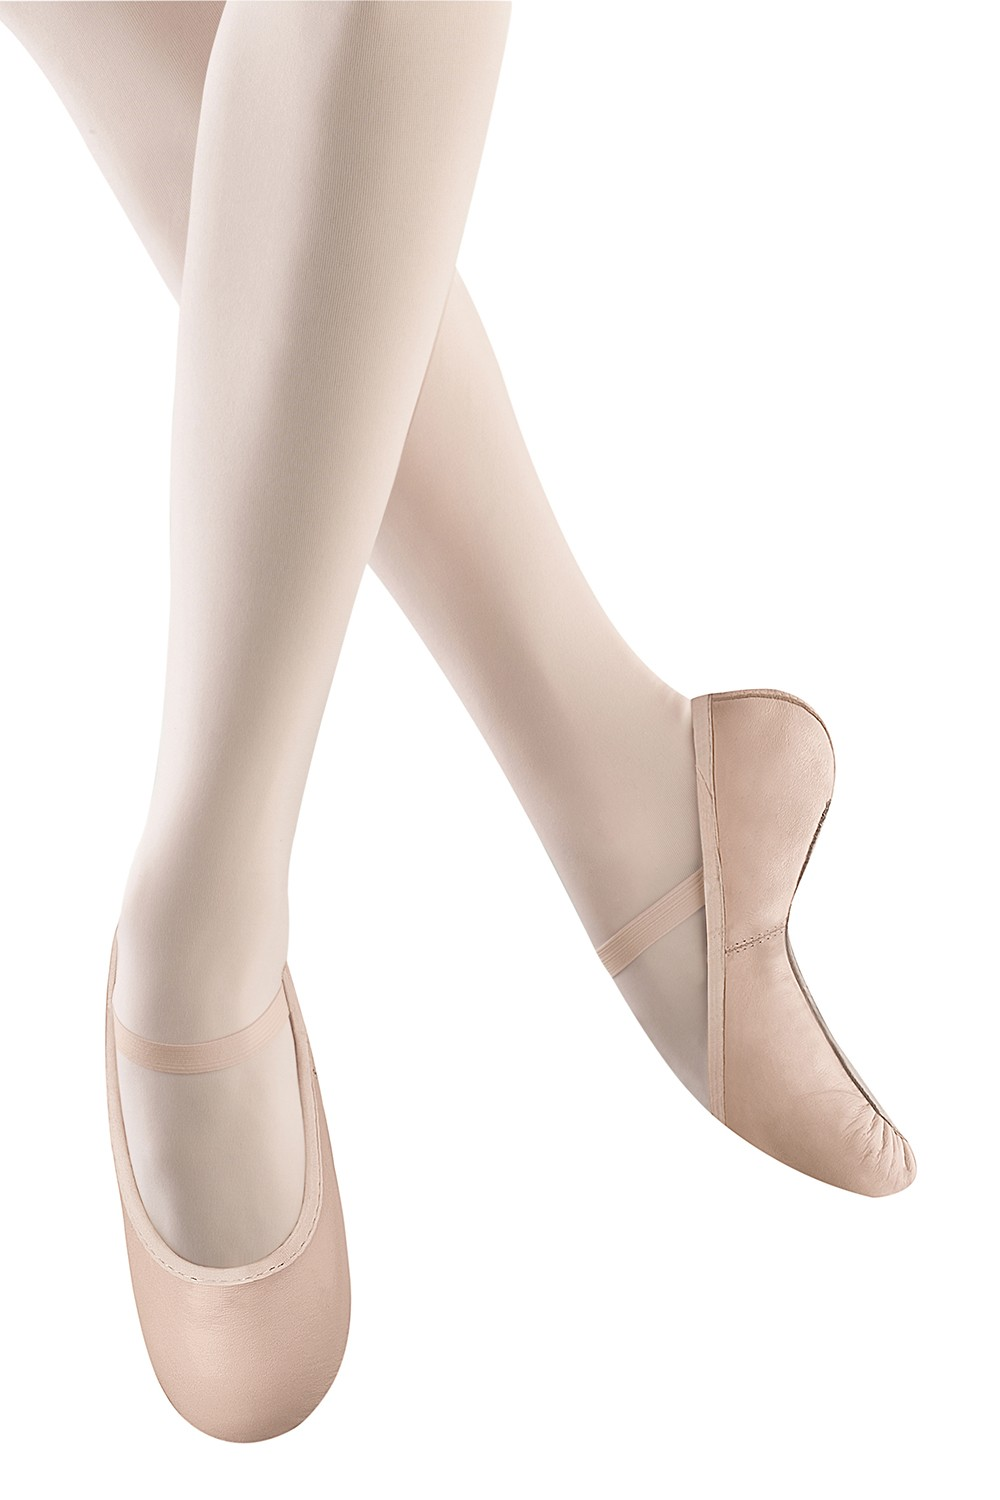 Belle Women's Ballet Shoes